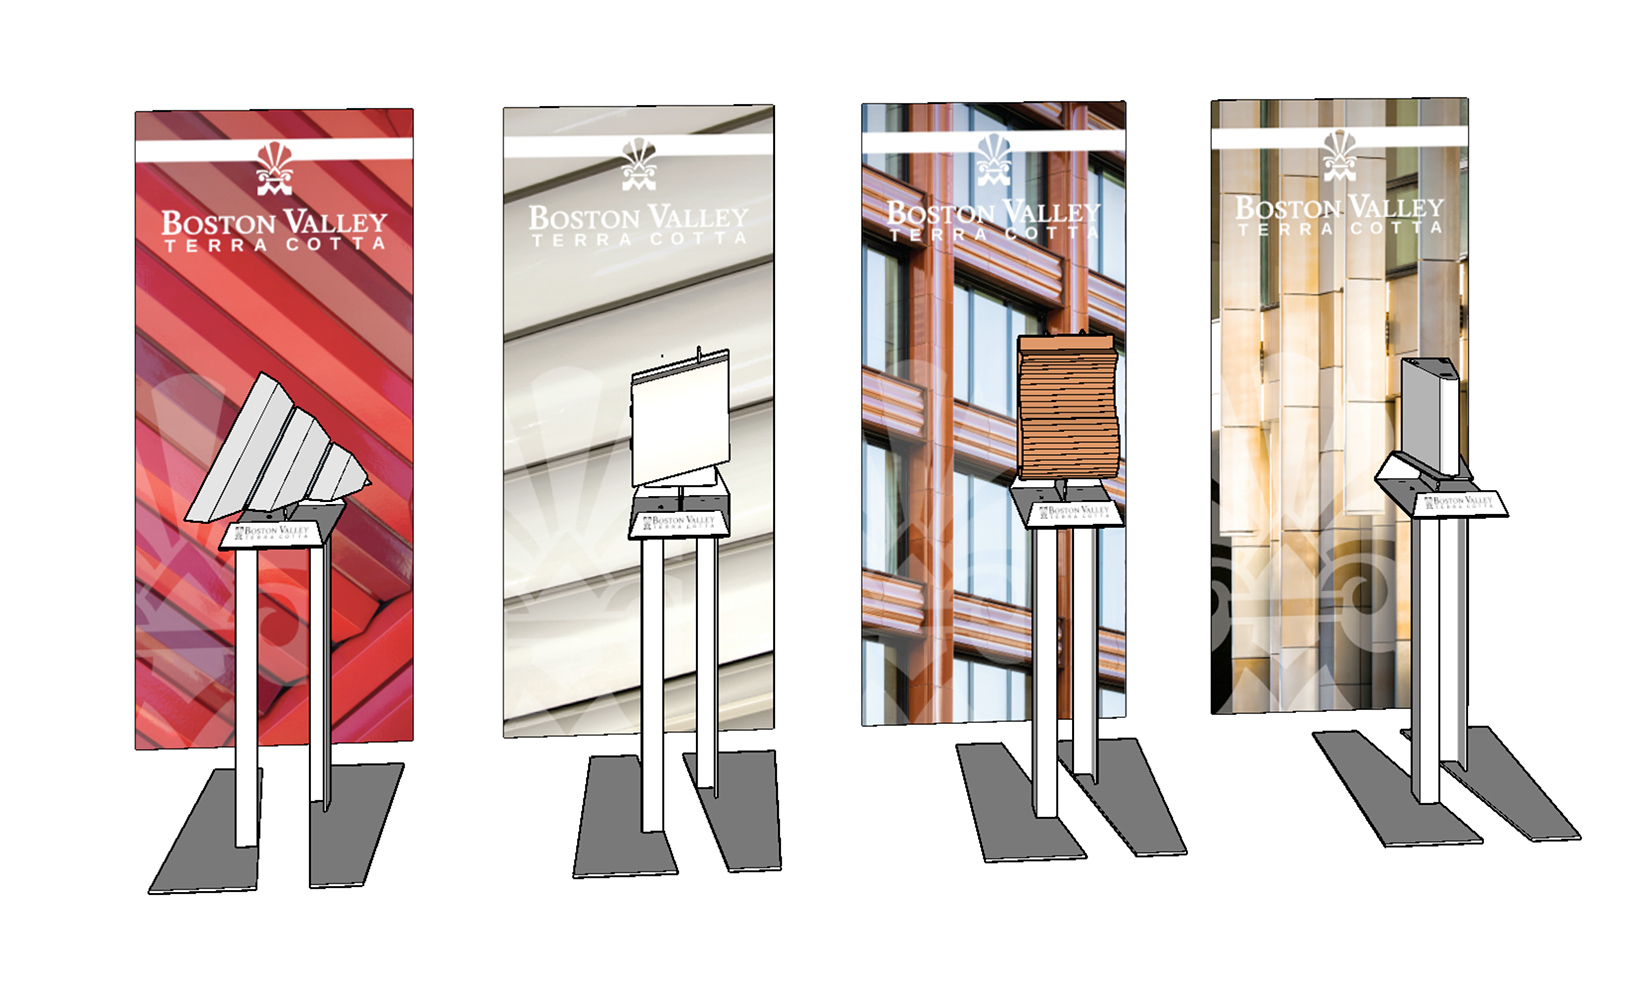 A 3D rendering of Boston Valley's trade show display, which pairs 4 retractable banners and custom-designed product stands to display pieces of terra cotta